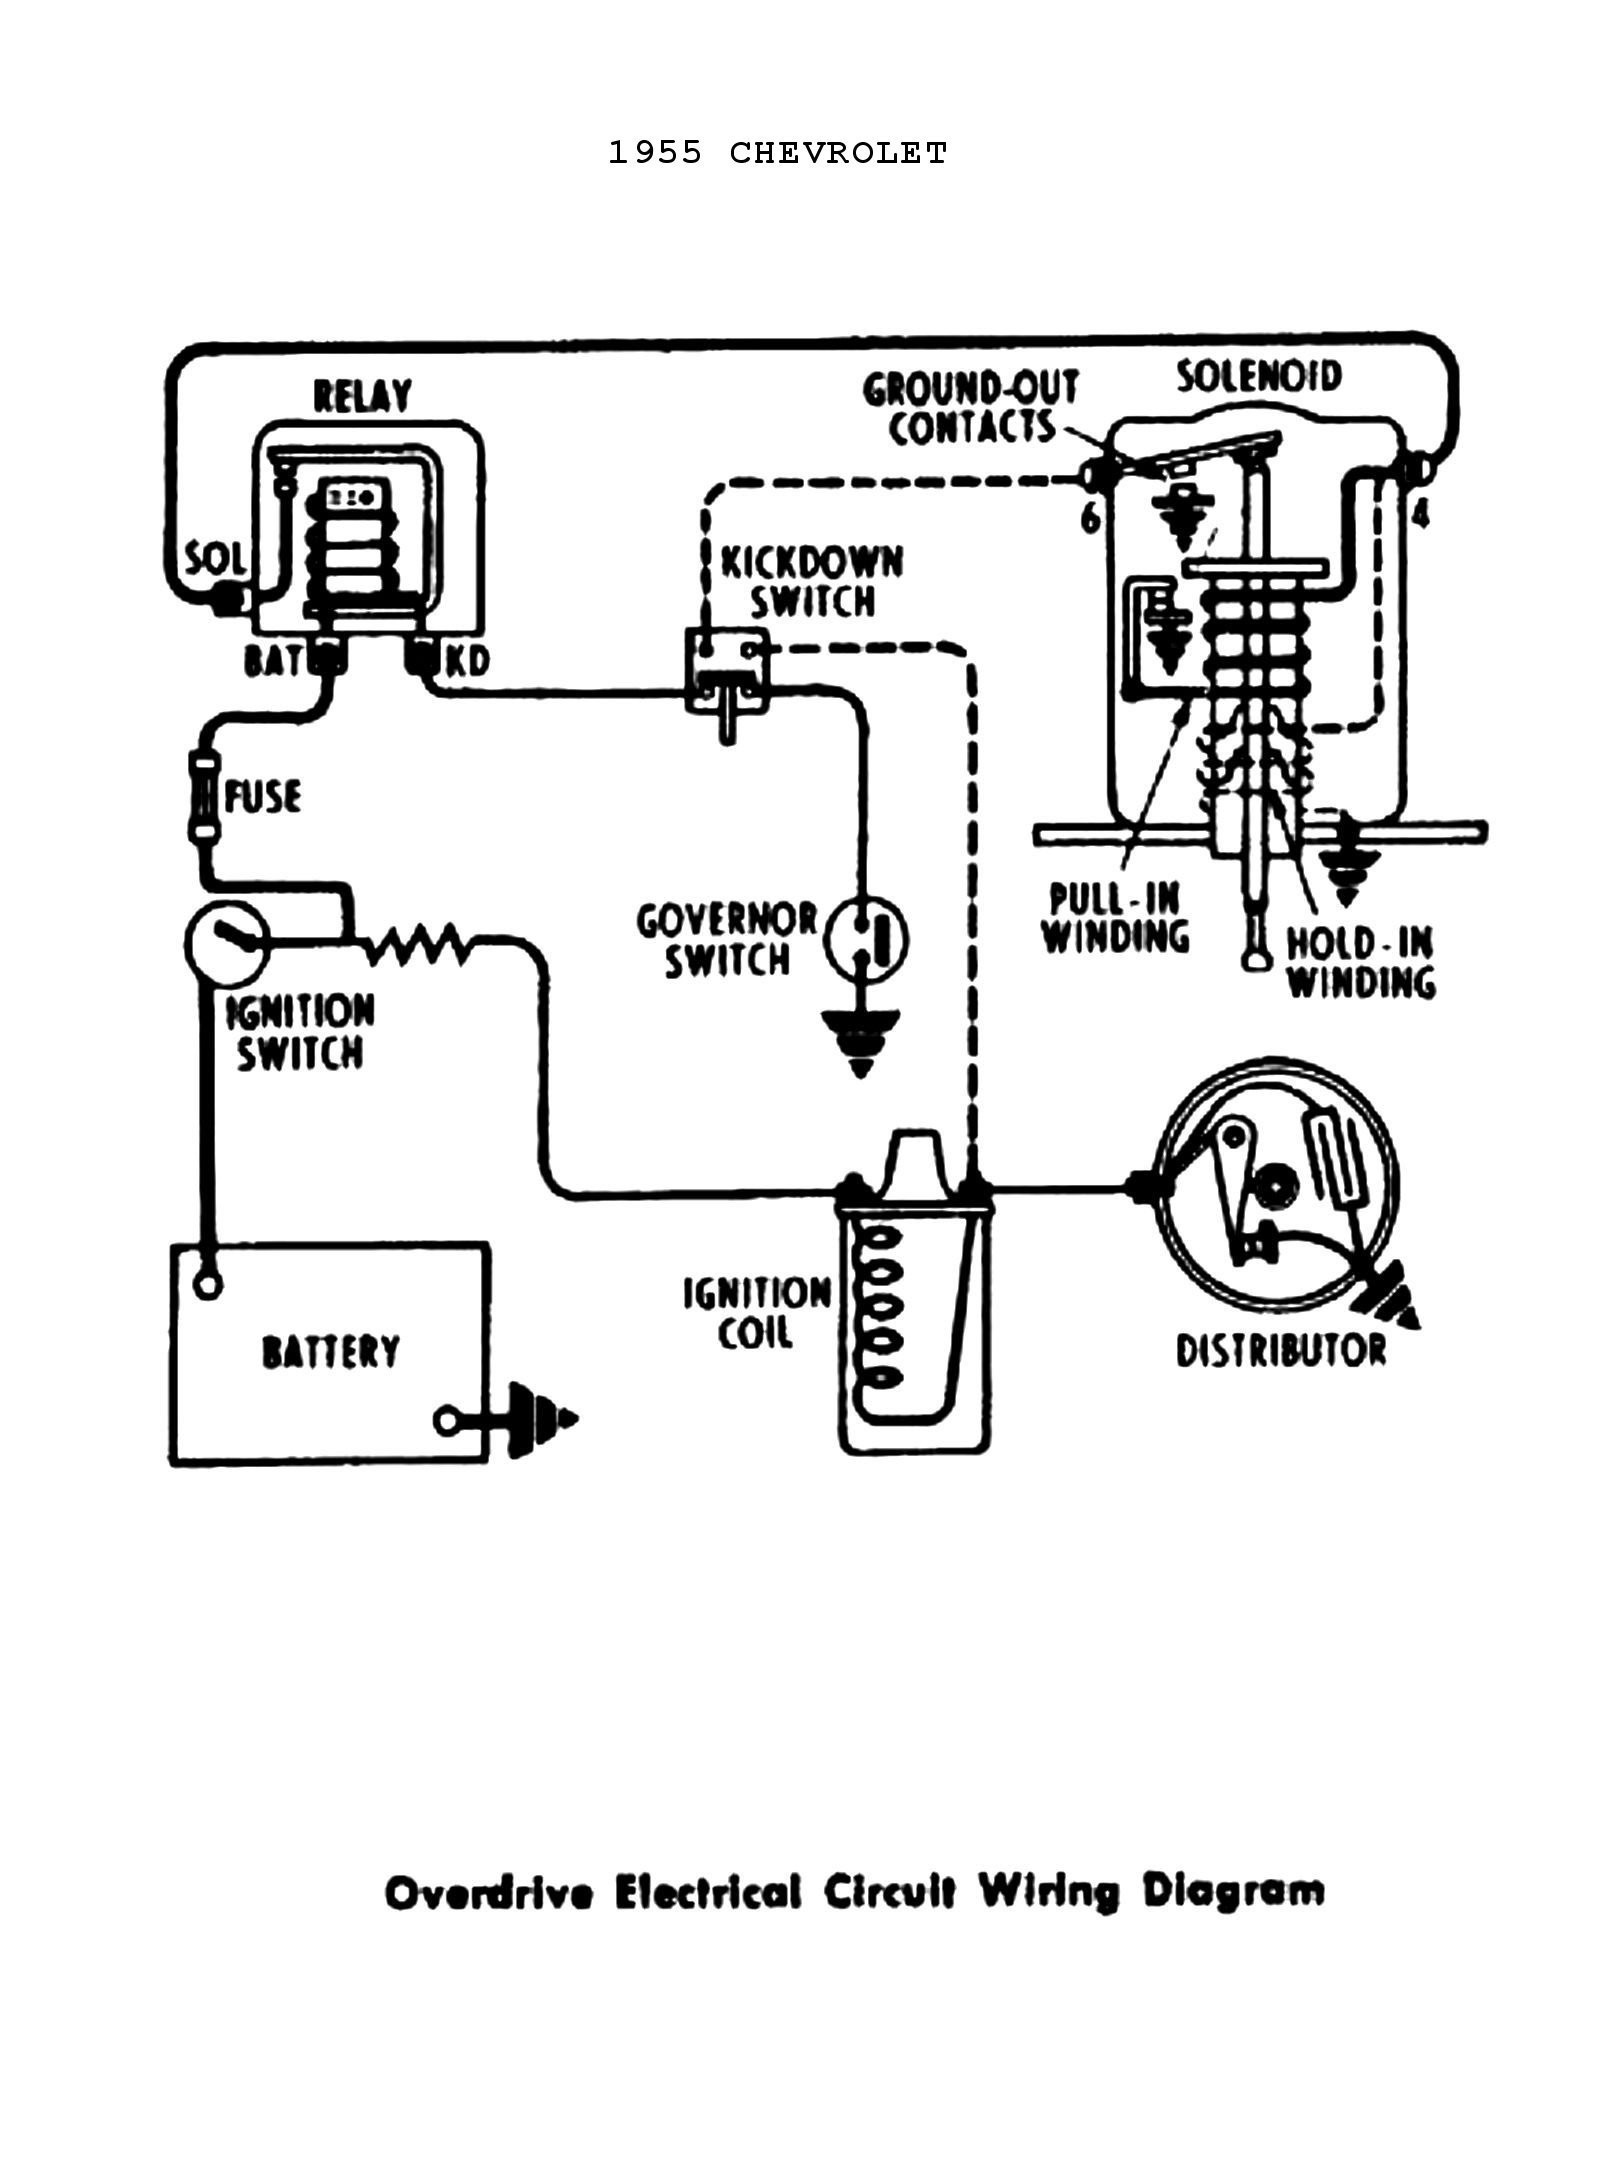 Wiring Diagram The Ignition System Valid Ignition Switch Wiring